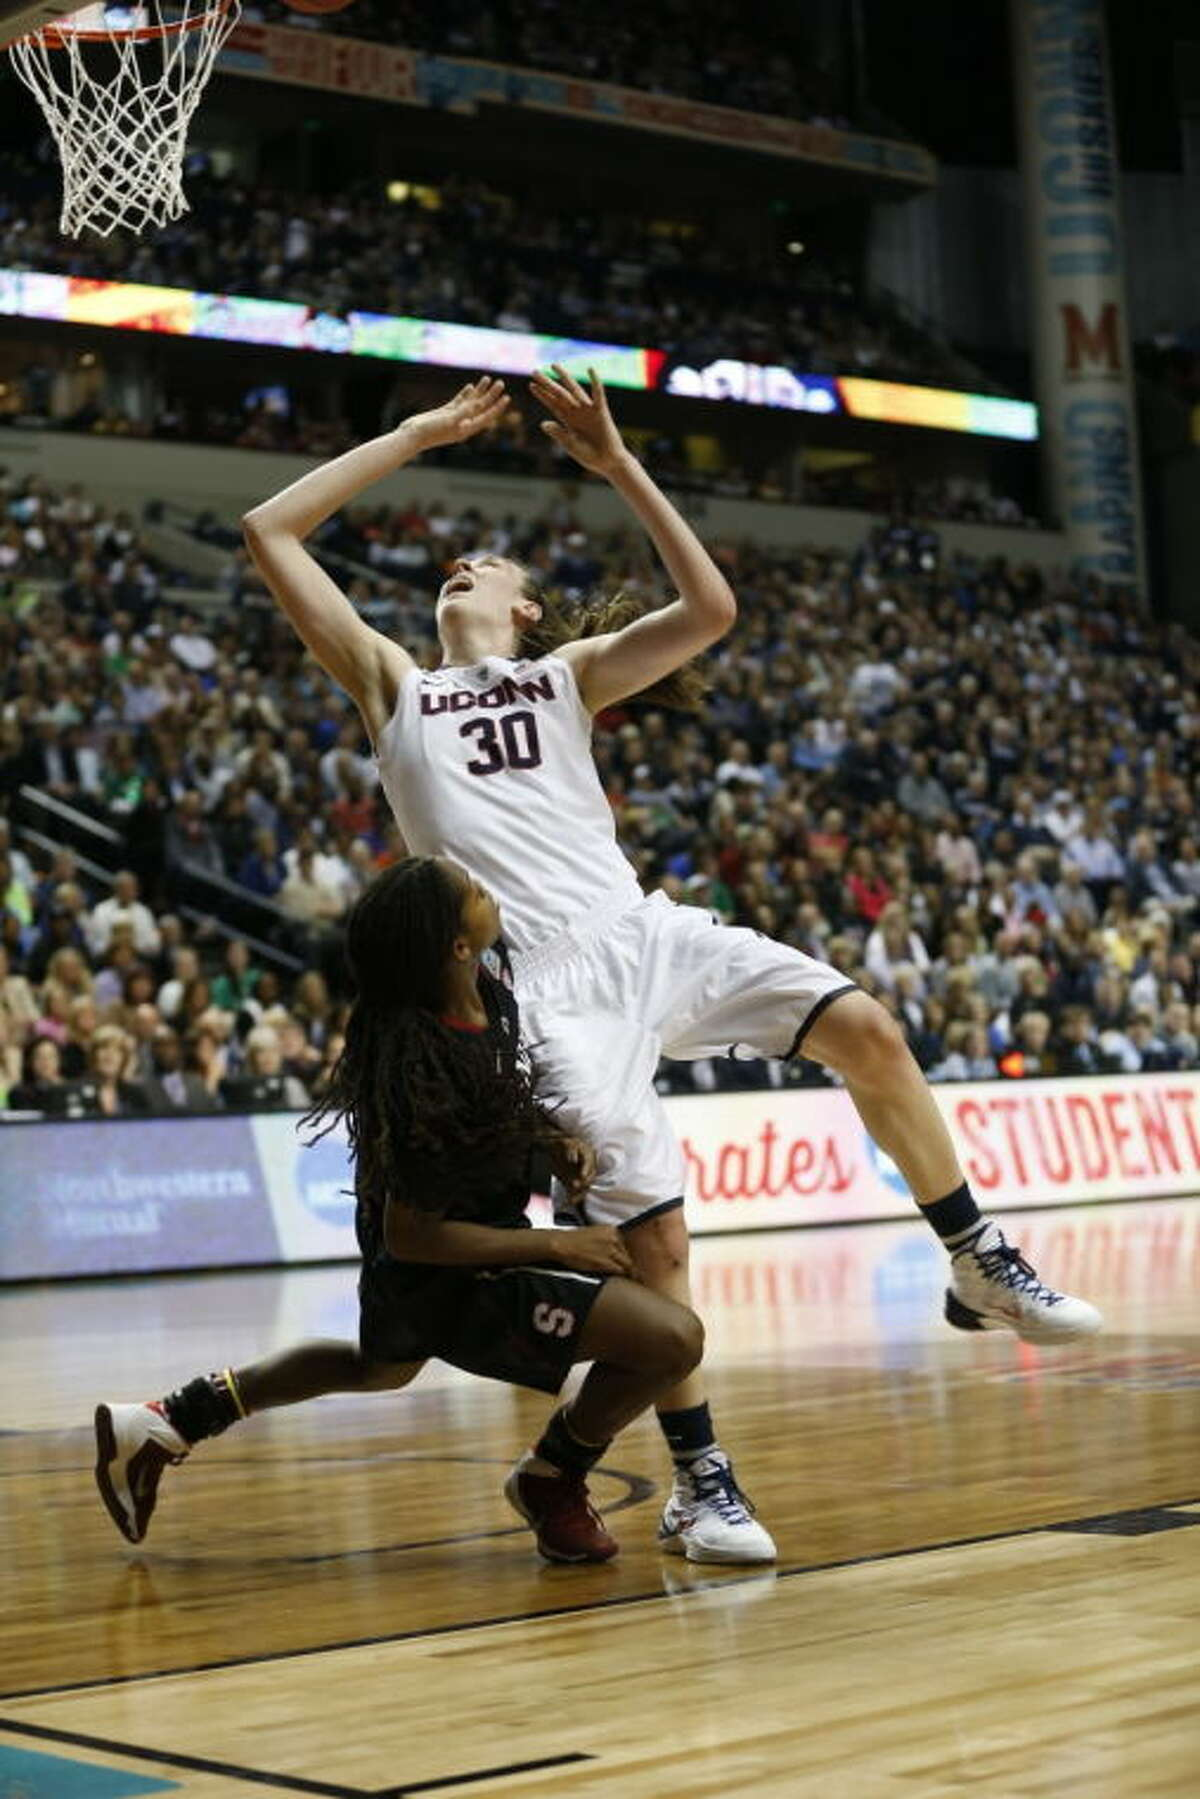 Connecticut forward Breanna Stewart (30) shoots over Stanford guard Lili Thompson (1) during the first half of the semifinal game in the Final Four of the NCAA women's college basketball tournament, Sunday, April 6, 2014, in Nashville, Tenn. (AP Photo/Mark Humphrey)